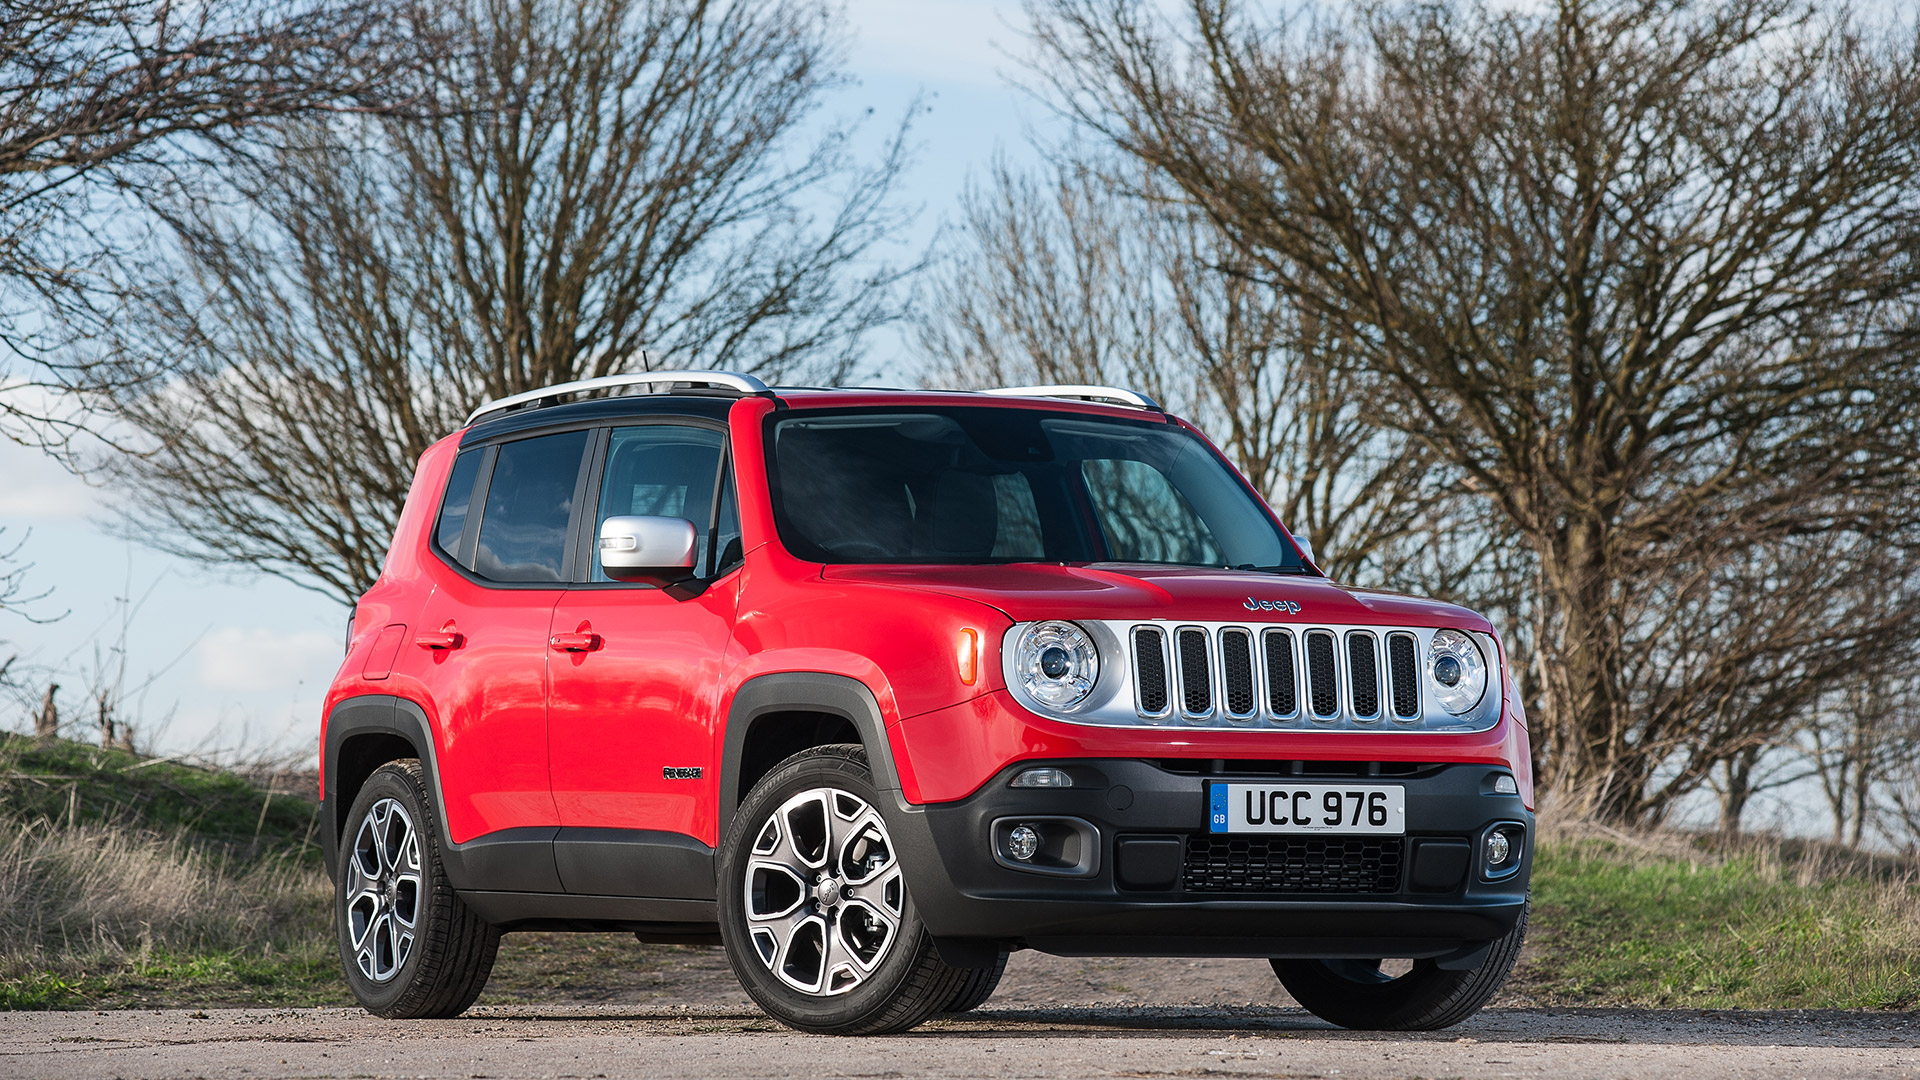 Used Jeep Renegade For Sale >> Jeep Renegade SUV (2014 - ) review | Auto Trader UK